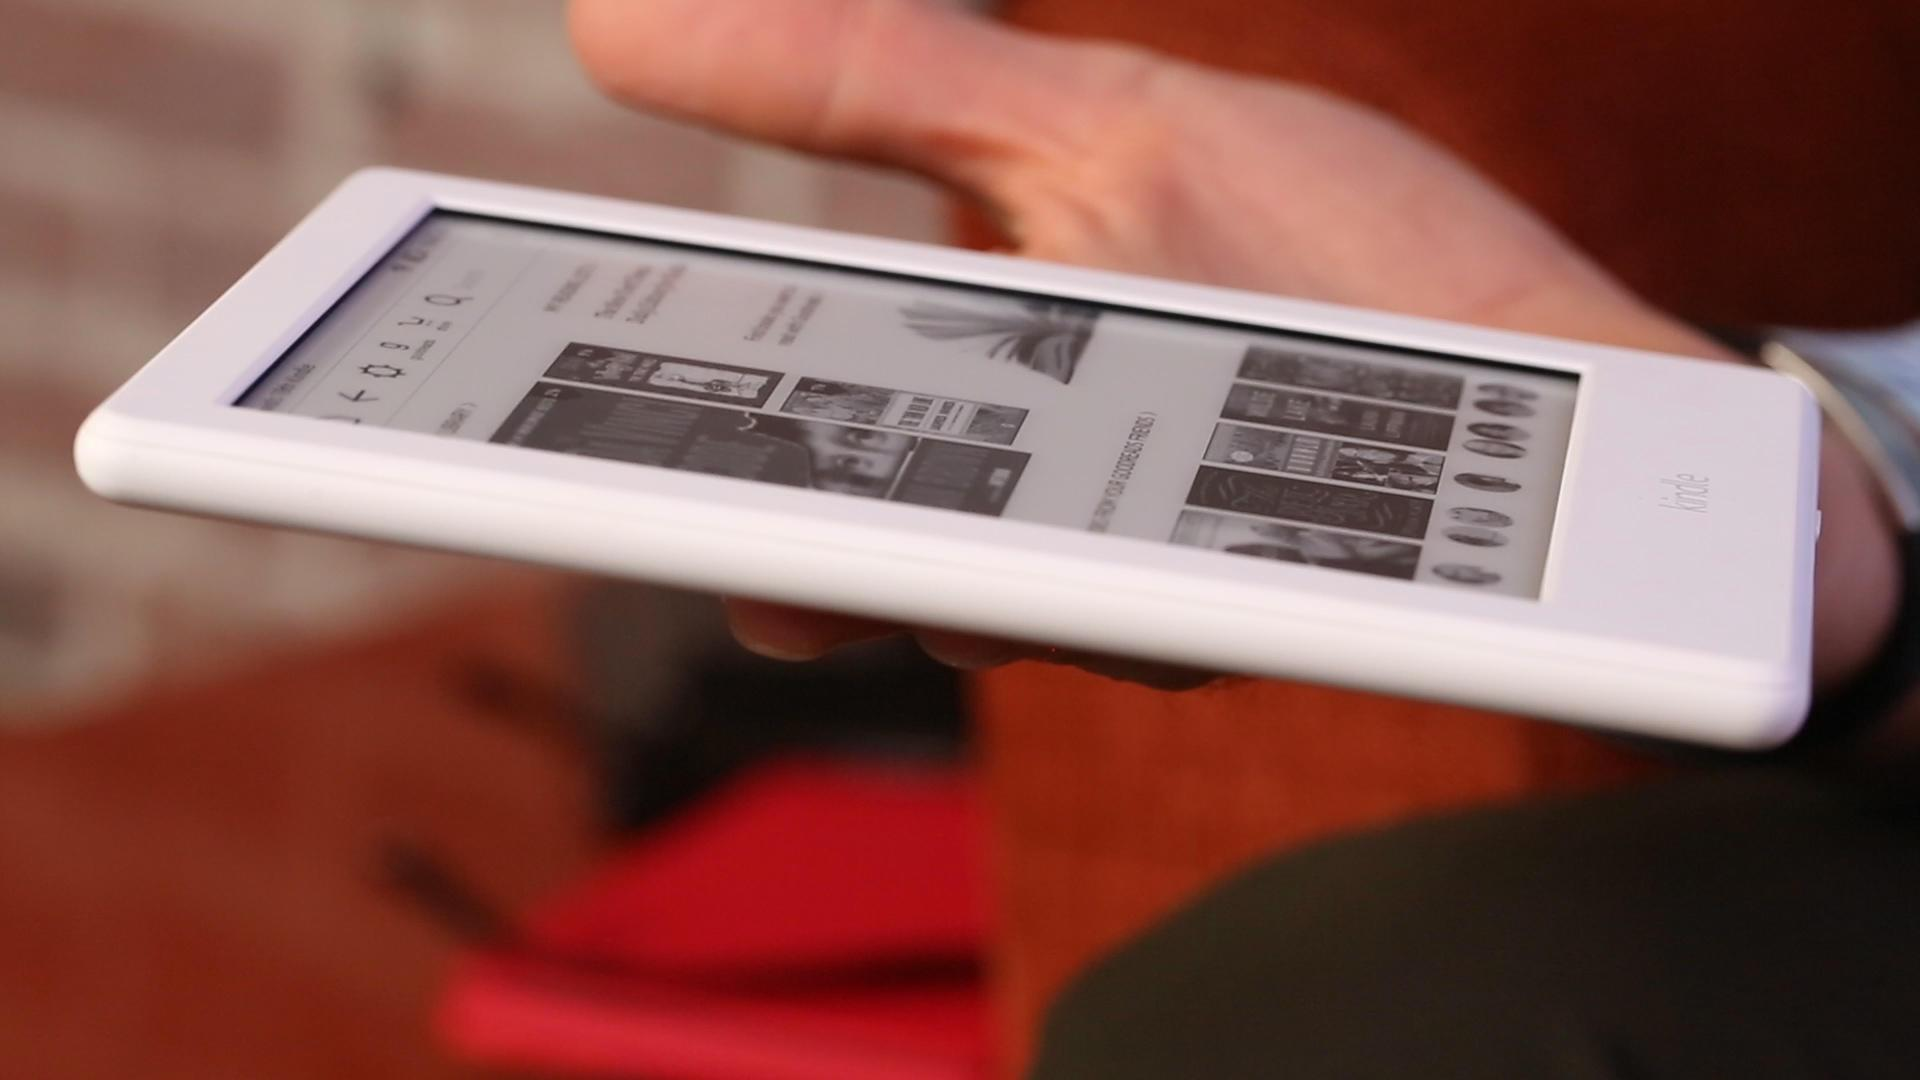 Amazon's cheapest Amazon Kindle e-reader trims down, adds Bluetooth feature for visually impaired readers